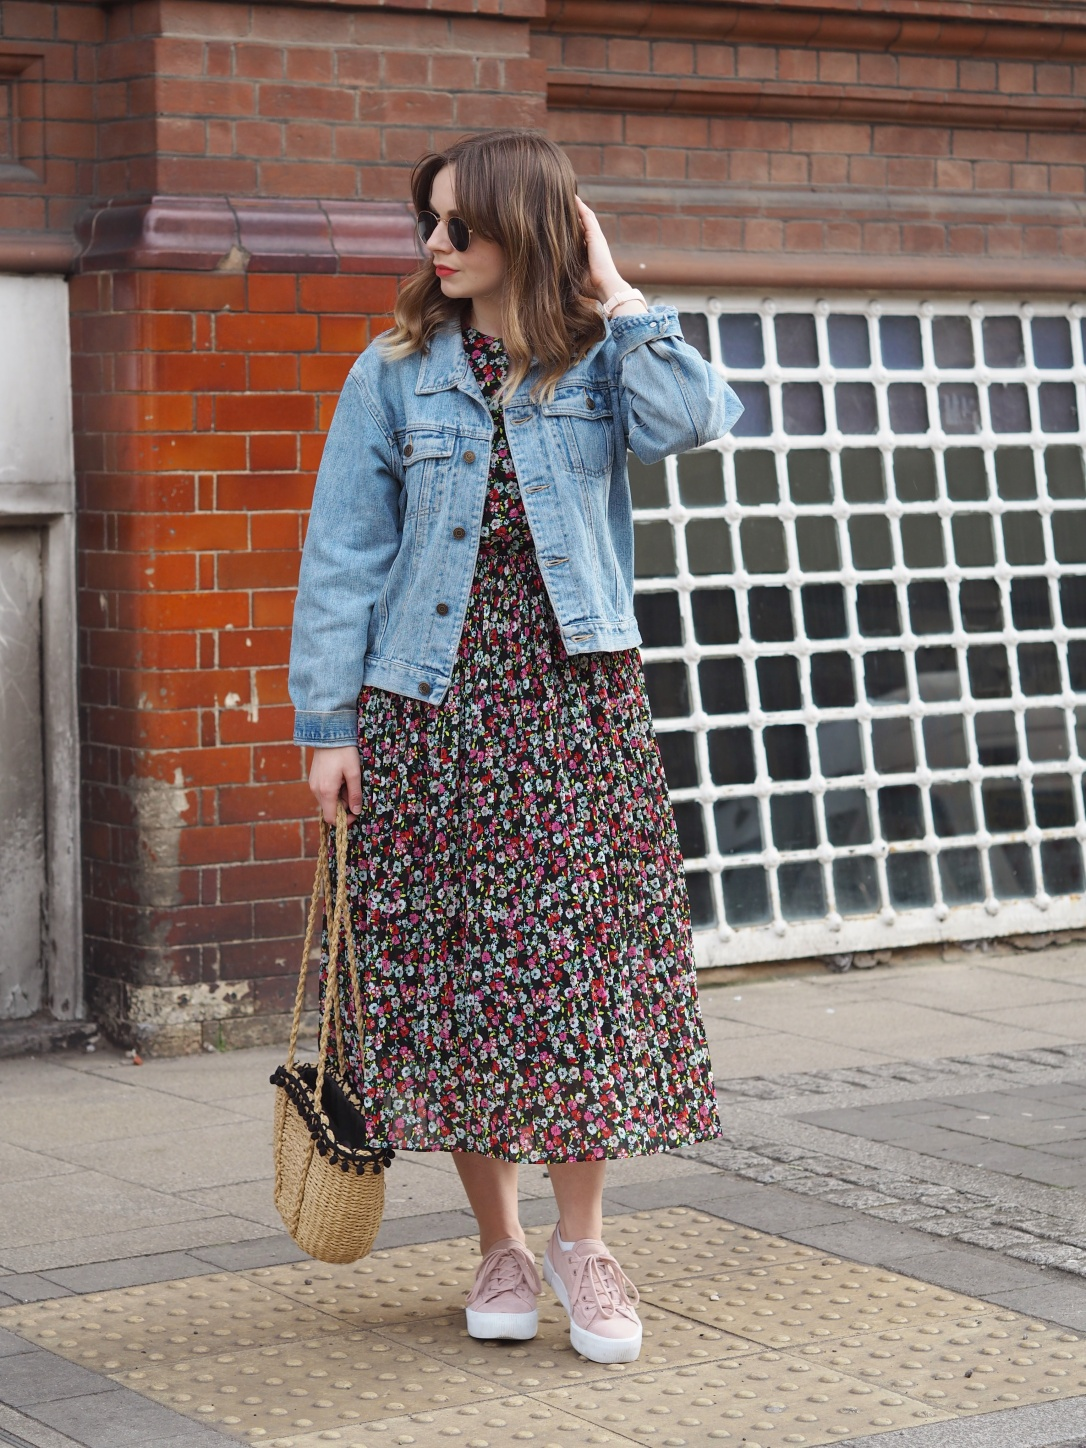 Denim jacket and floral midi dress